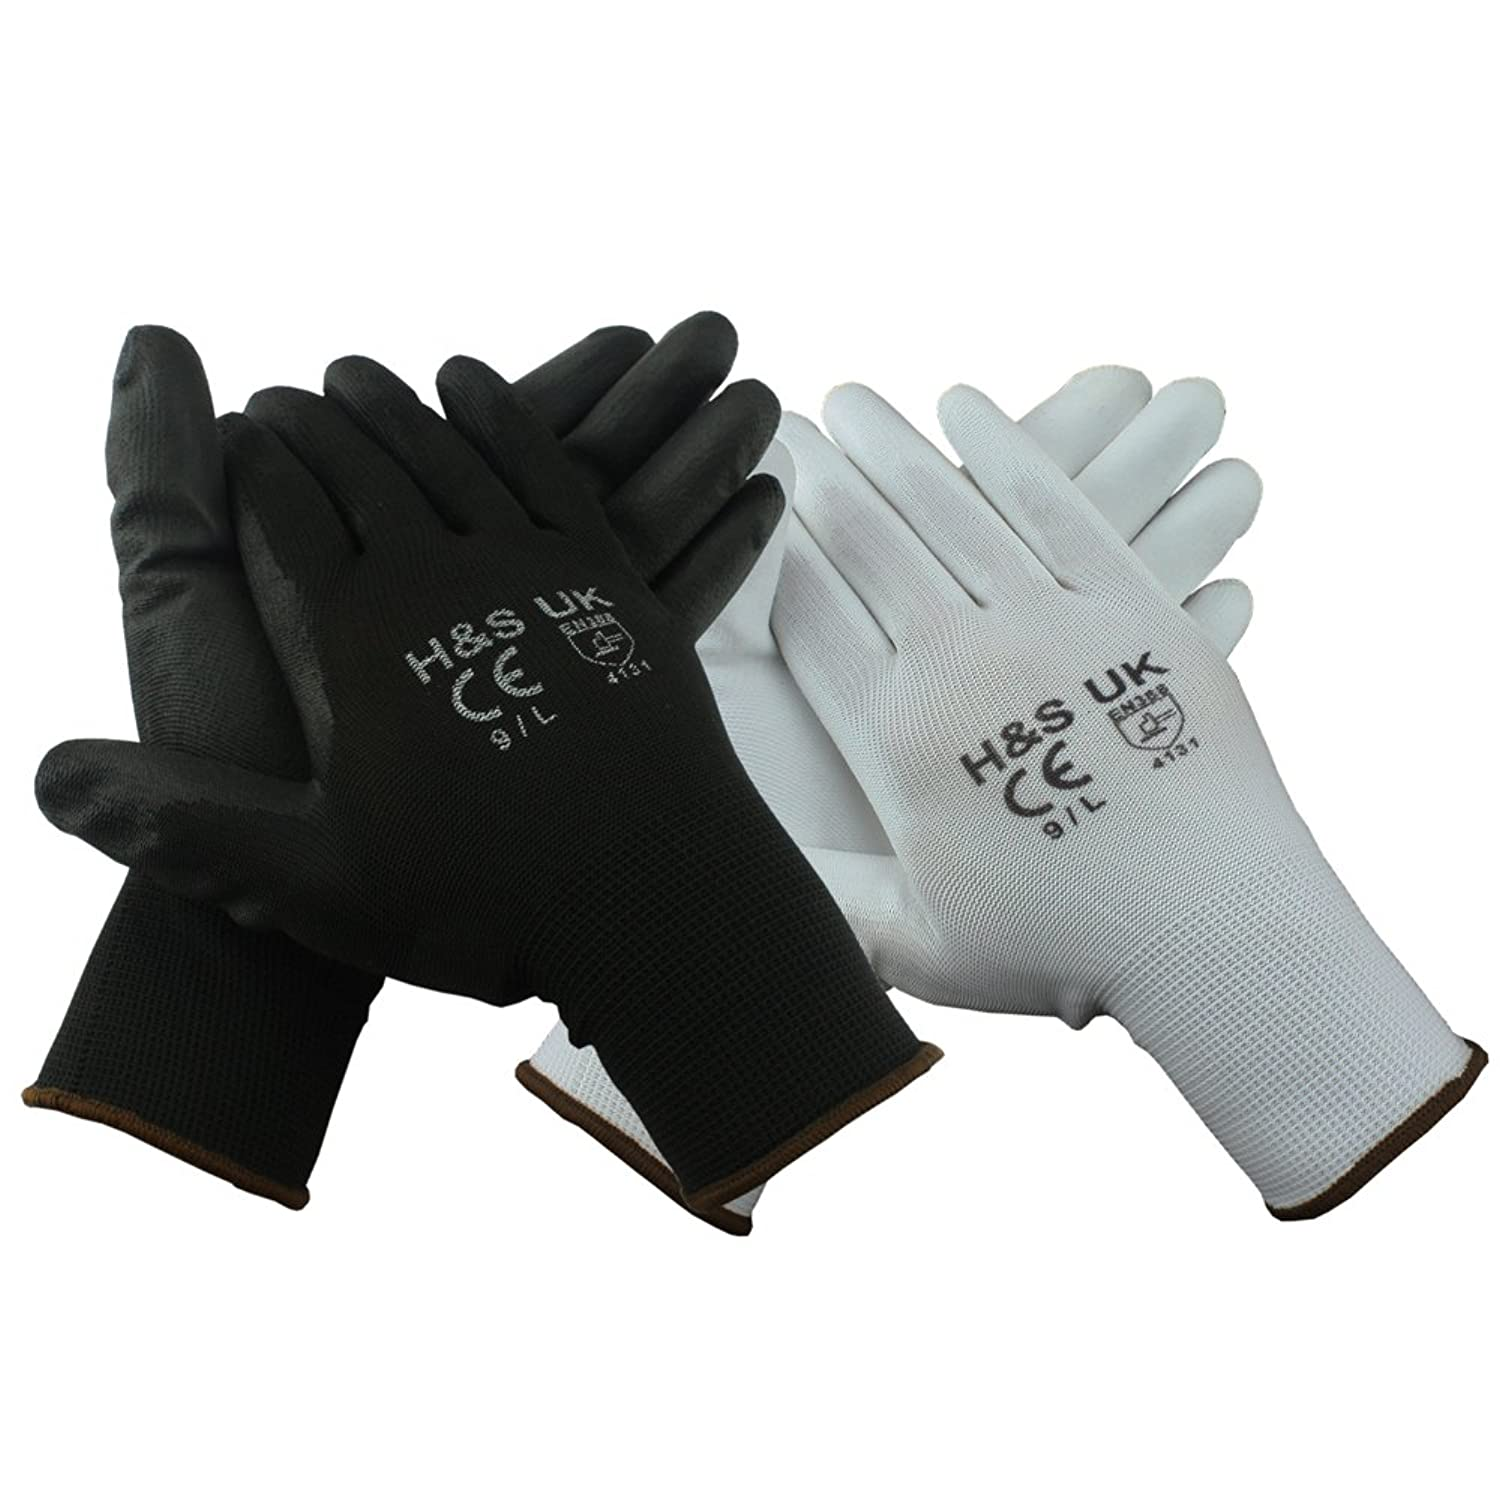 Black gardening gloves - H S 12 Pairs High Quality Black Nylon Pu Safety Work Gloves Builders Grip Gardening Black